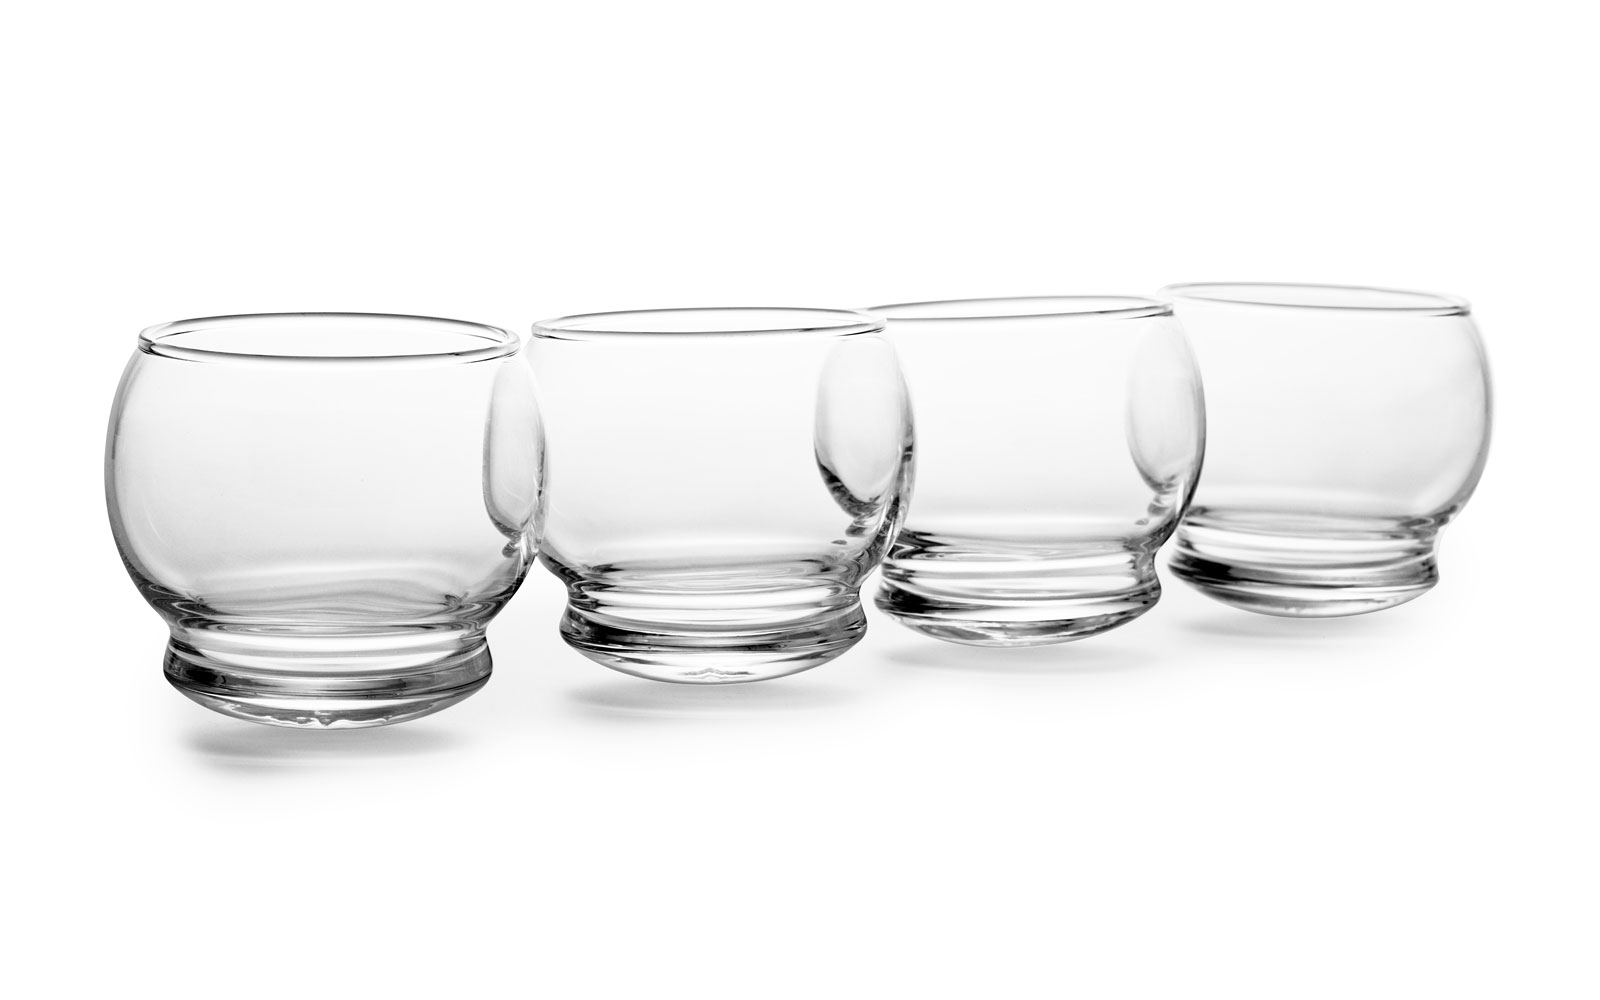 Rocking Glass A Fresh Take On The Traditional Tumbler Glass